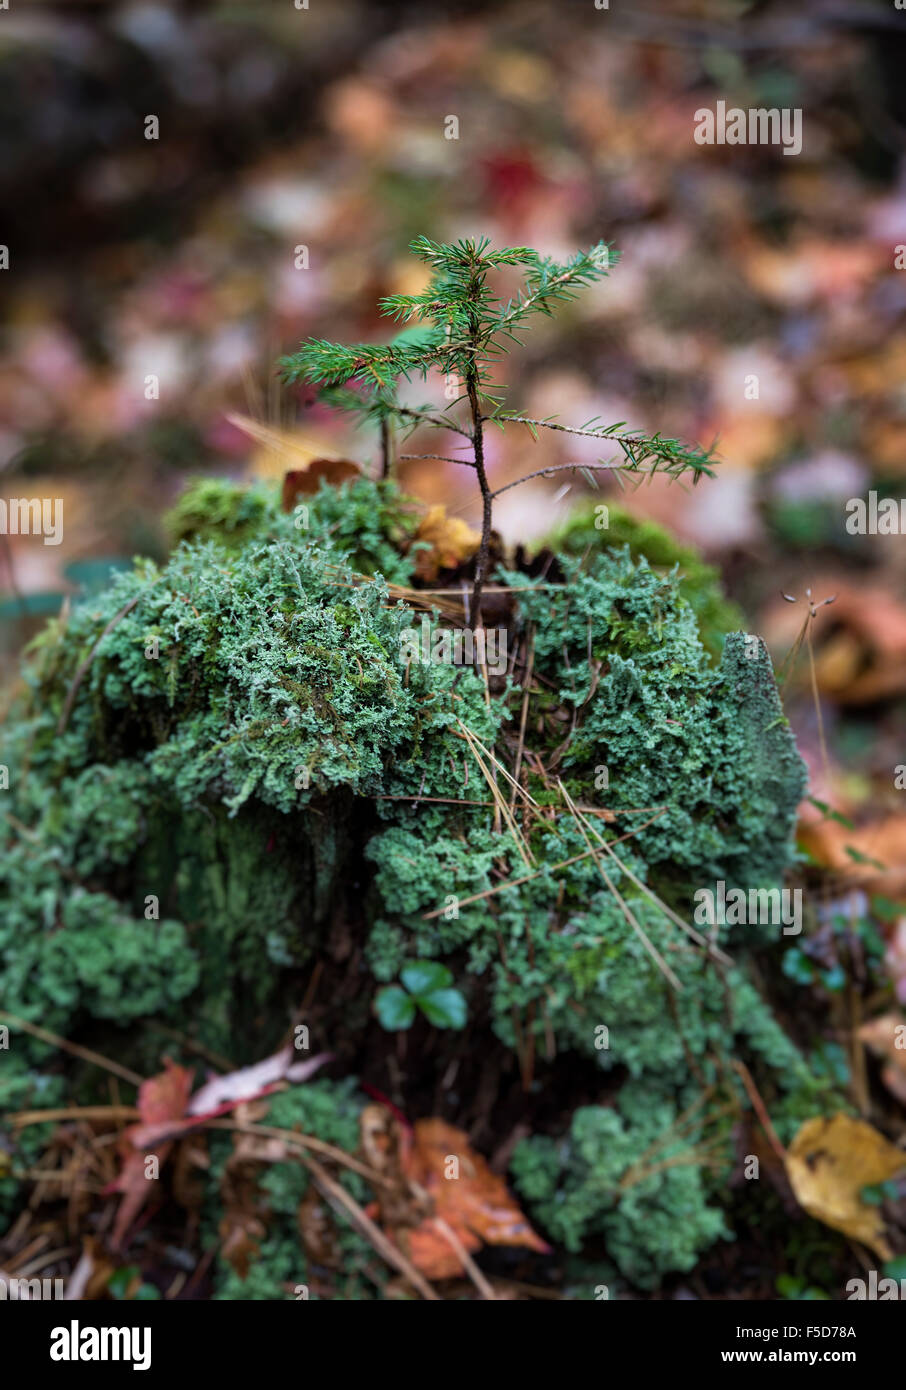 Fragile conifer seedling growing from the decayed trunk of a tree, New Hampshire, USA Stock Photo